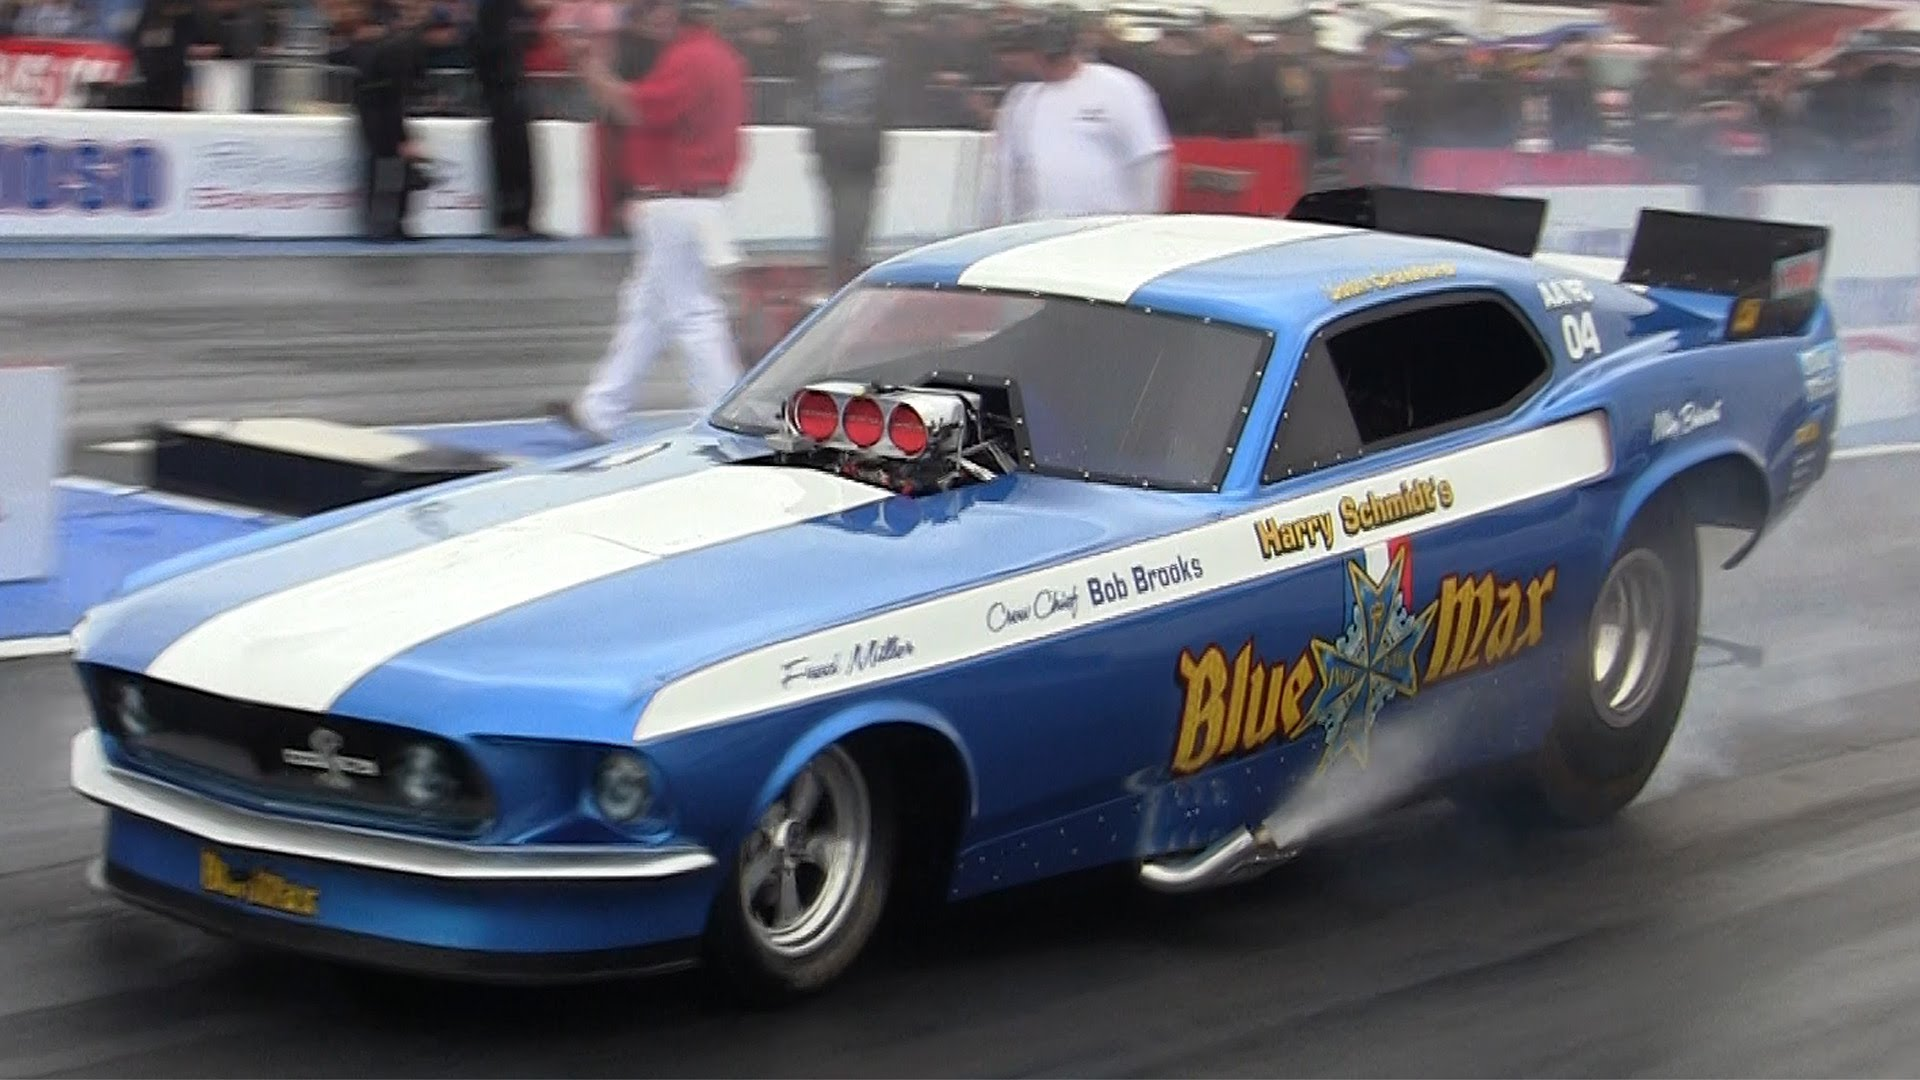 ... funny_nhra_drag_racing_race_hot_rod_rods_BLUE_MAX_ford_mustang_x.html